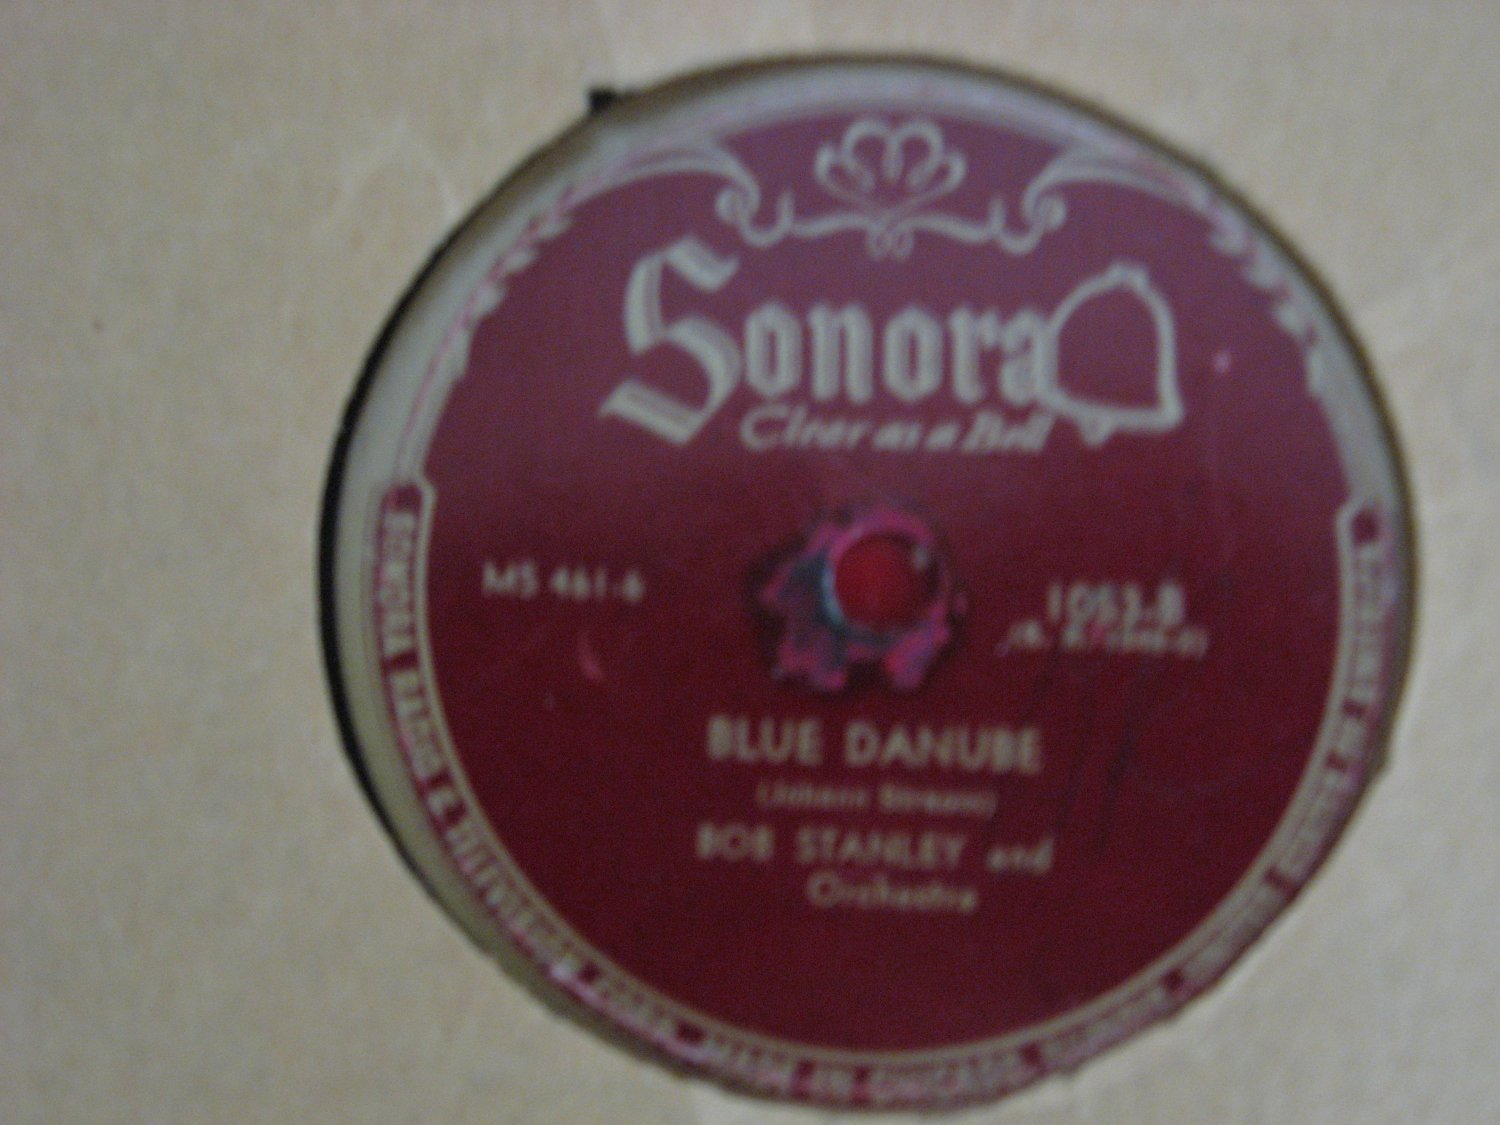 Bob Stanley - Blue Danube/Thousand And One Nights - 1945 (Vinyl Records)